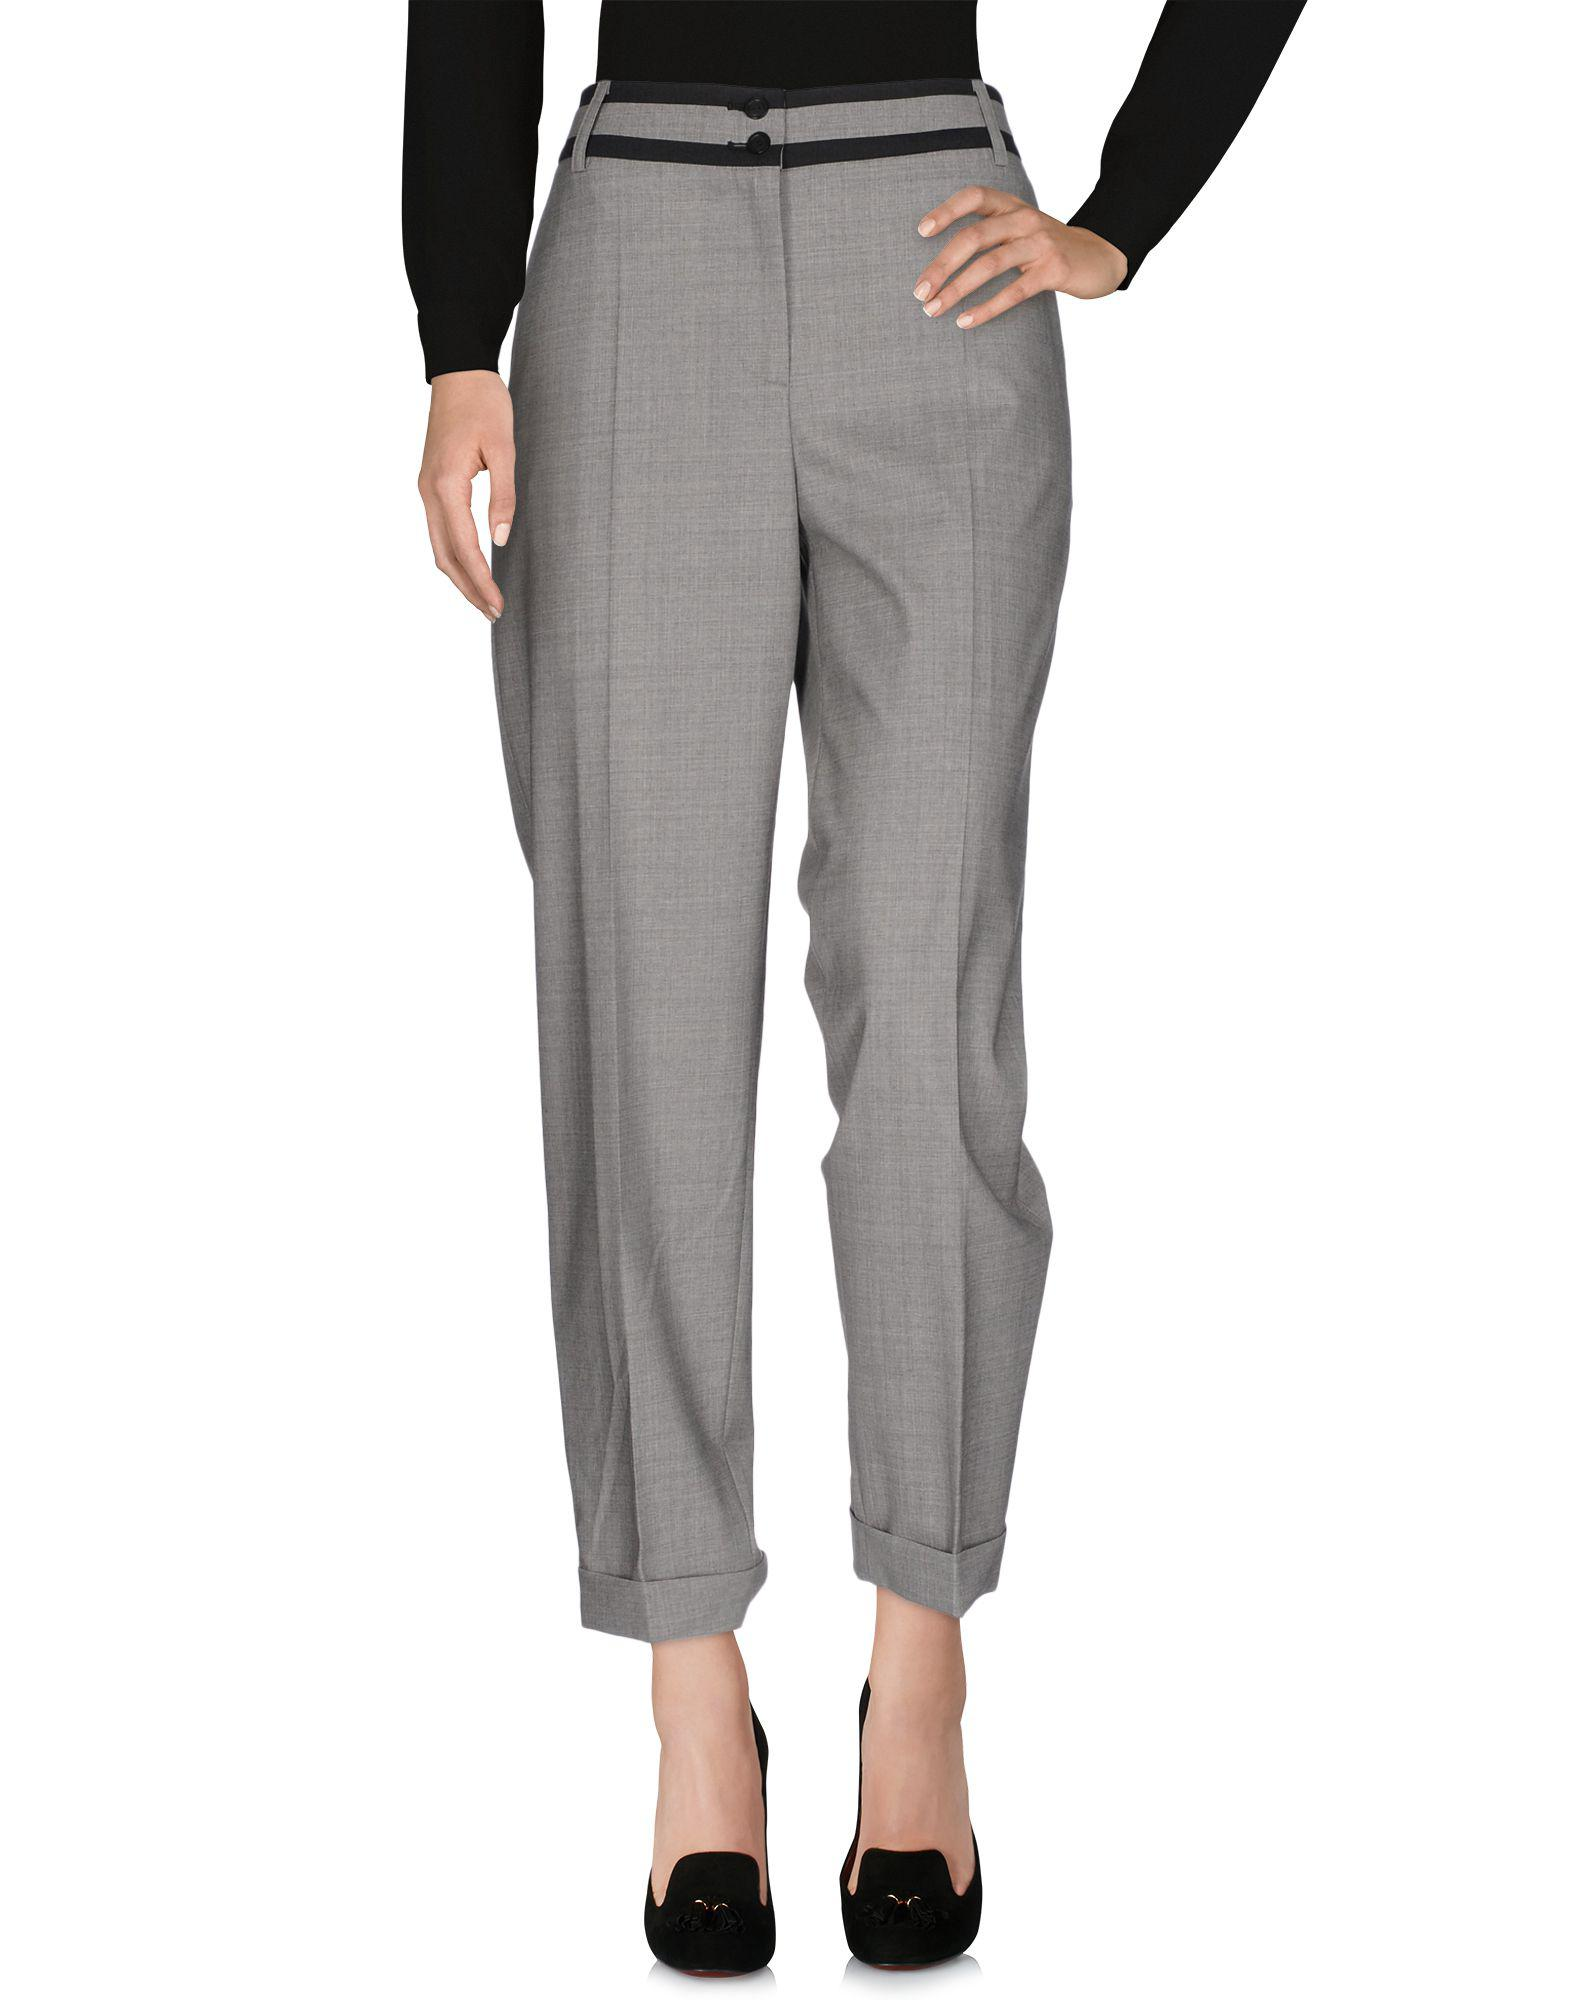 TROUSERS - Casual trousers Angelo Marani